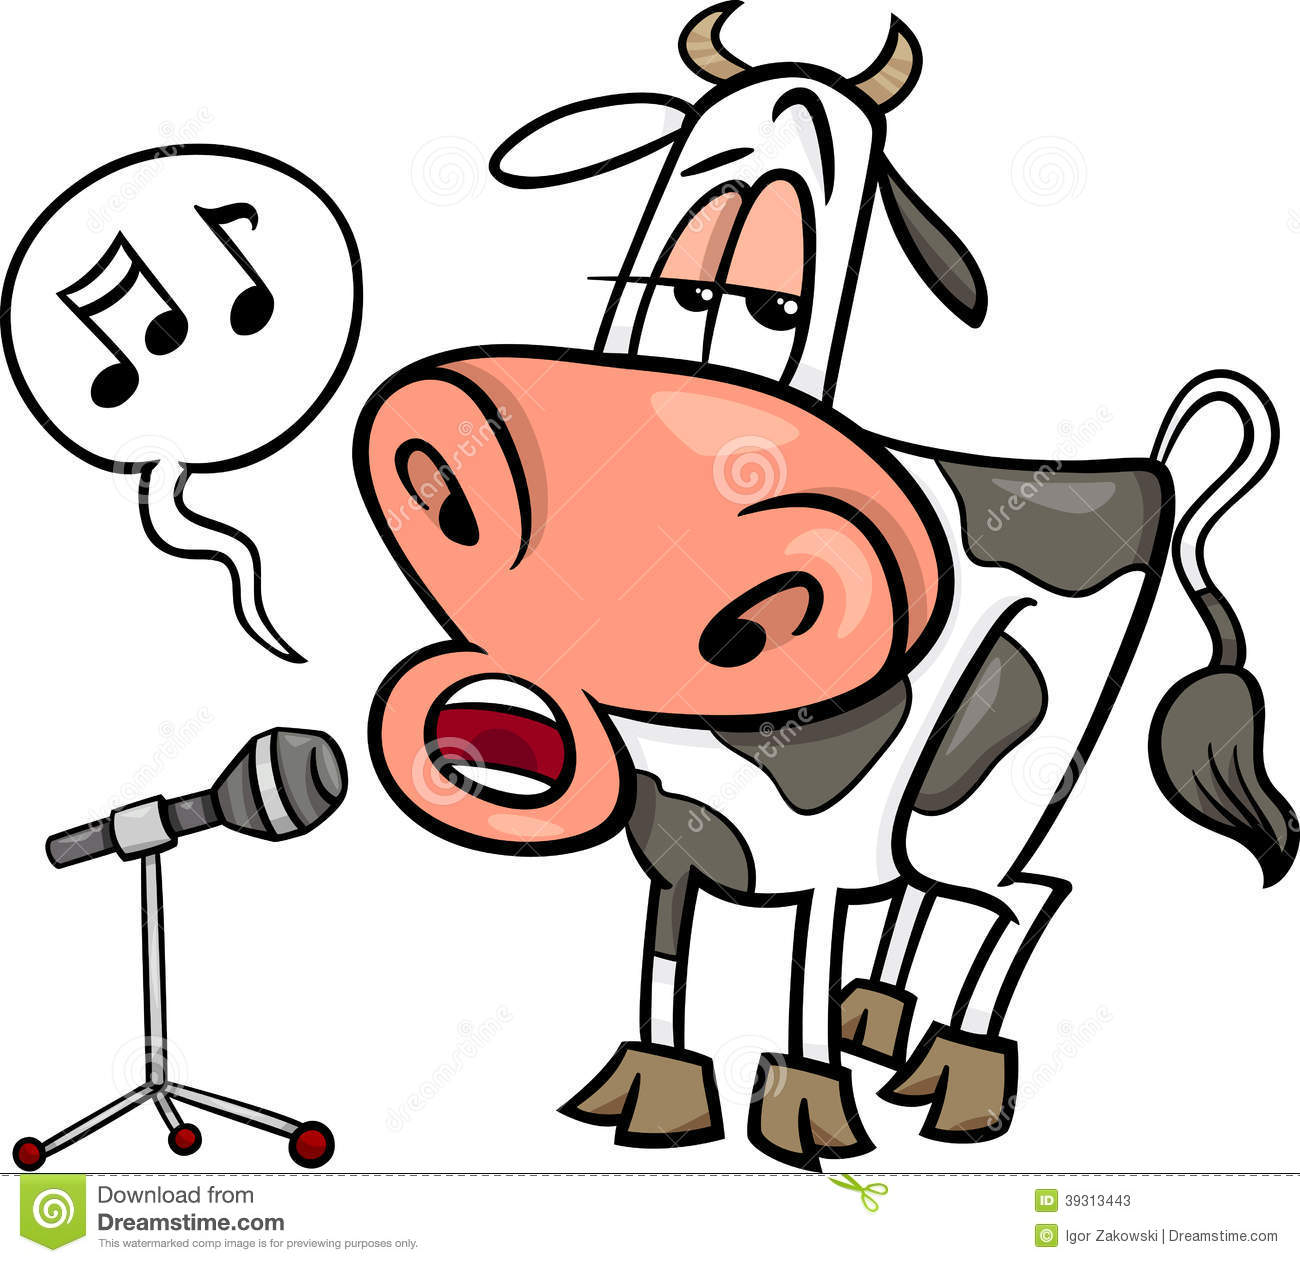 Singing Cow Cartoon Illustration Stock Vector   Image  39313443